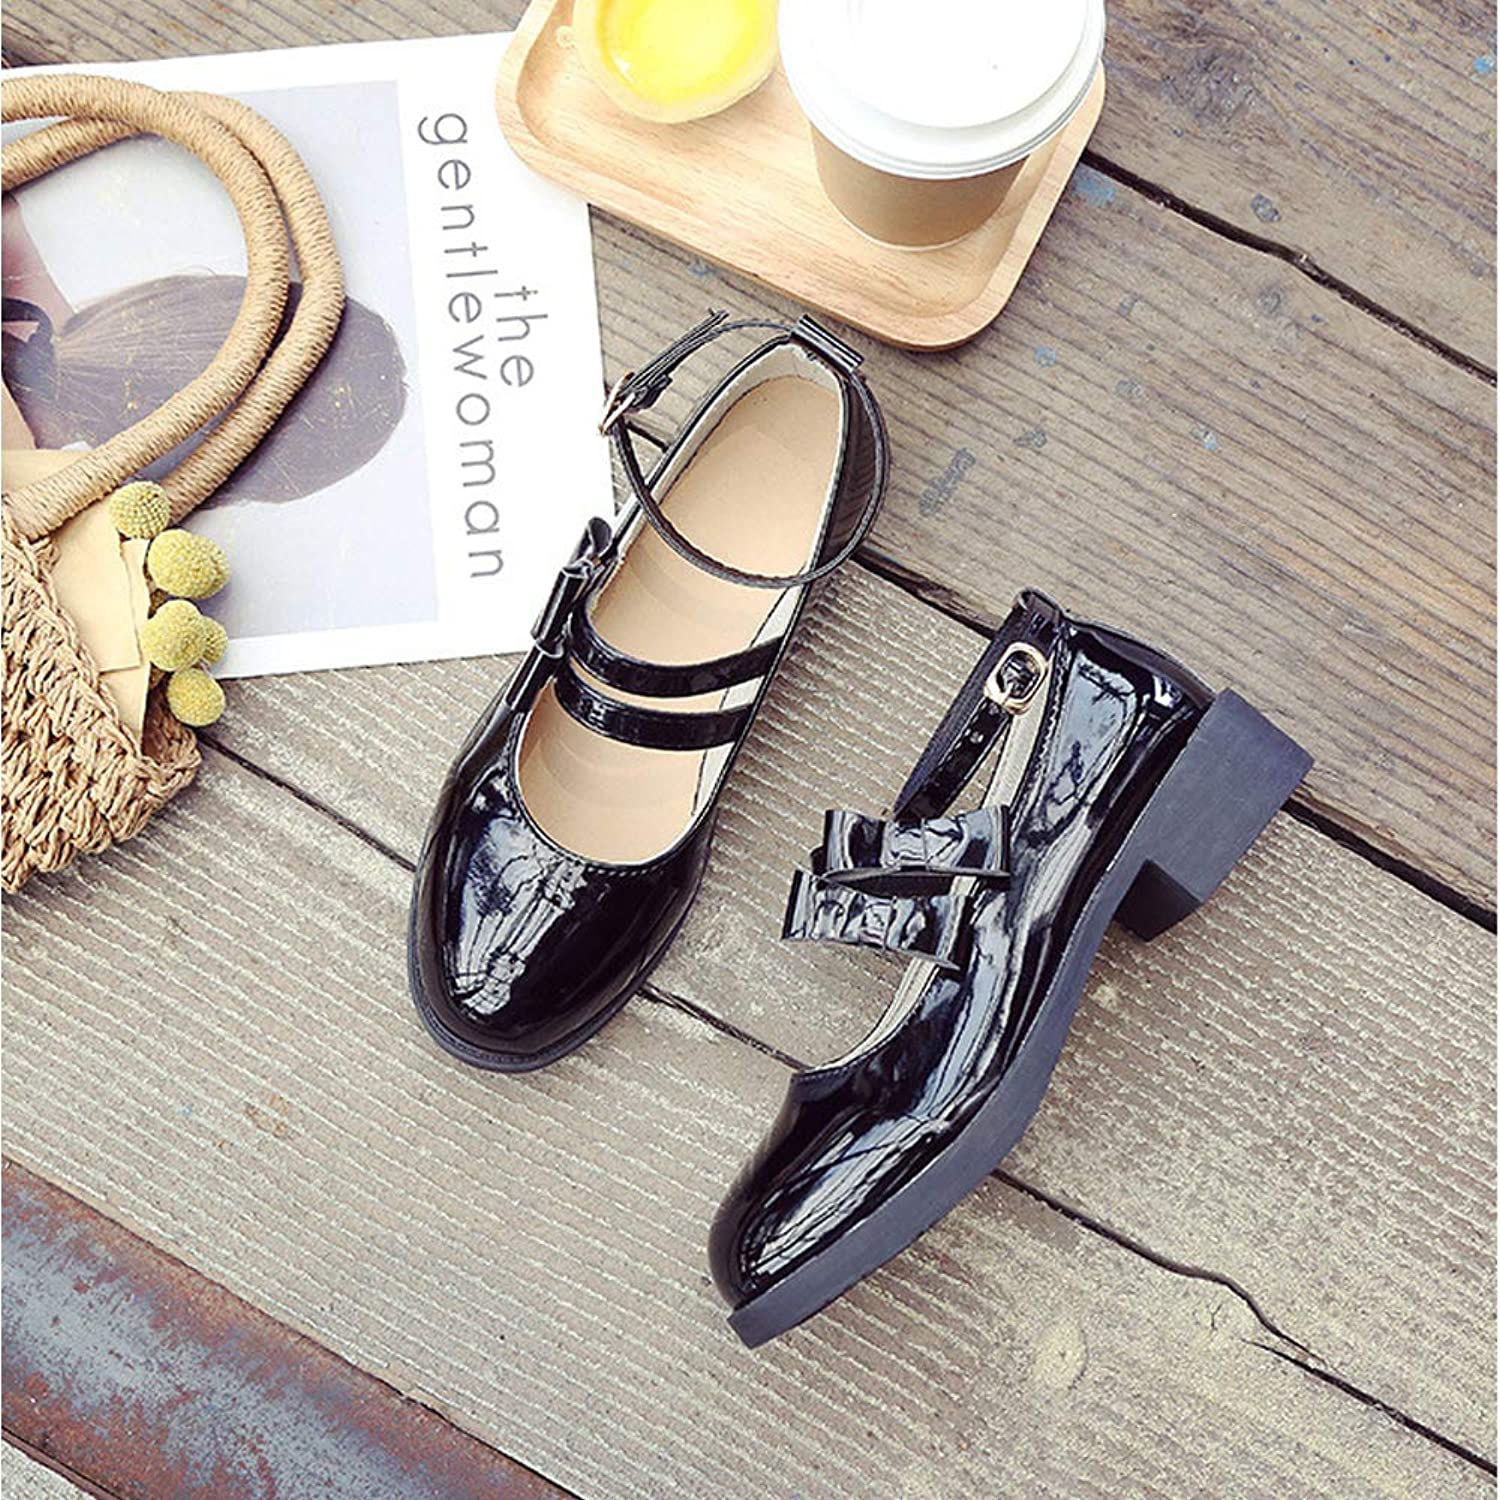 Uniform shoes Female Word Buckle with Round Head Small shoes Bow Soft Sister Single shoes Doll shoes,39